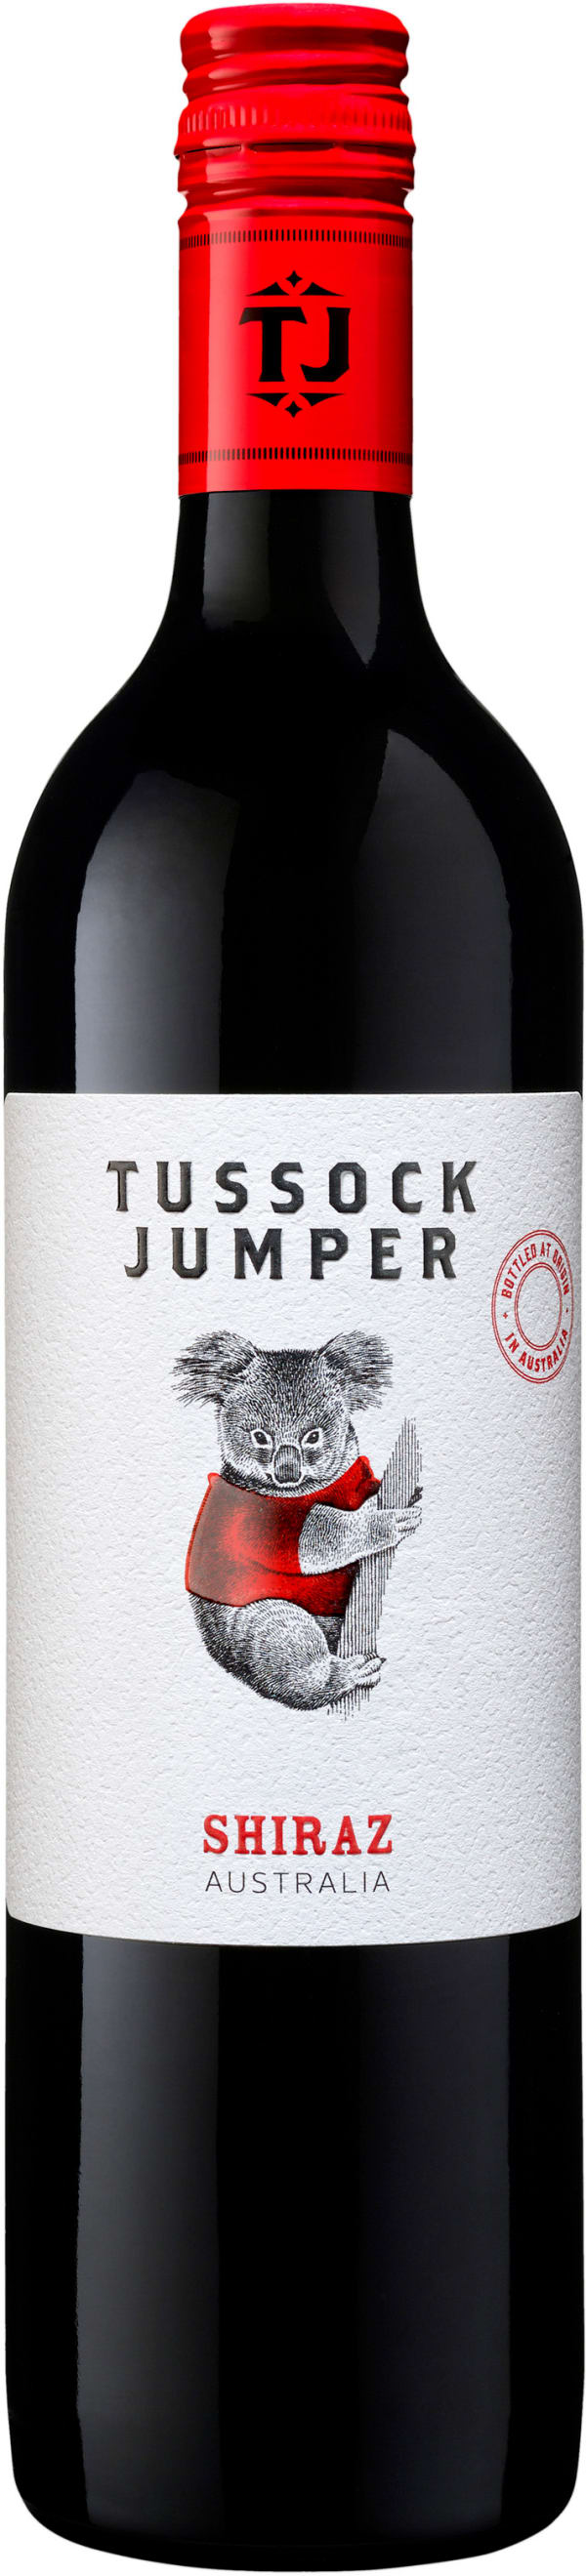 Tussock Jumper Shiraz 2017